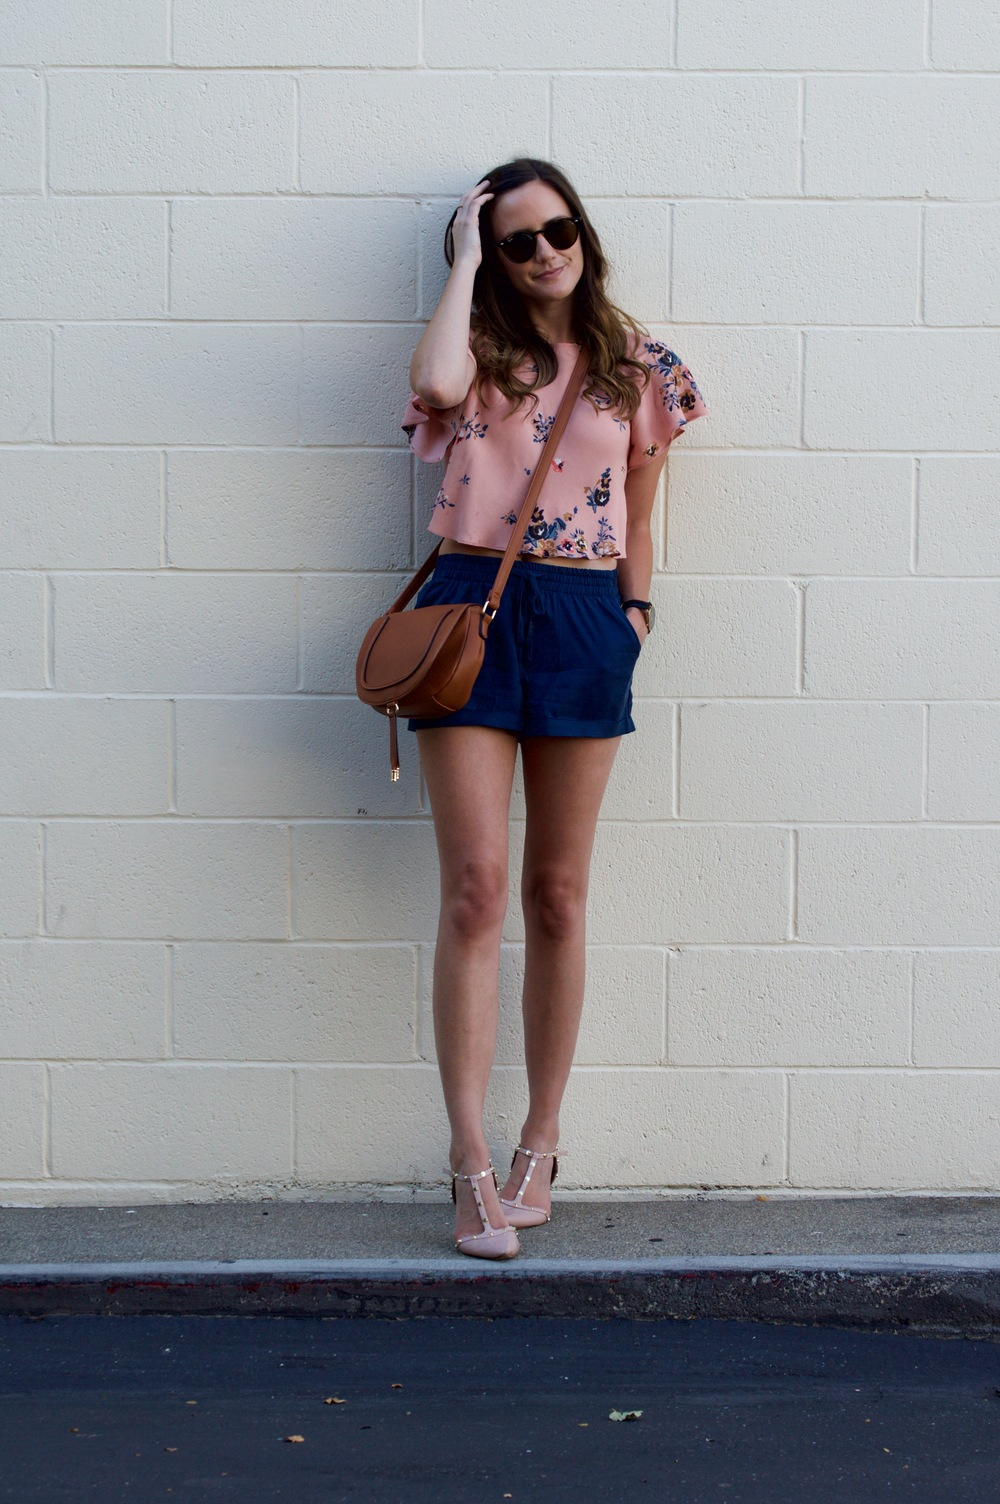 Shop the Look Below. Top: Urban Outfitters. Shorts: Nordstrom. Shoes: Nordstrom. Bag: ShoeDazzle. Sunglasses: Ray-Ban.